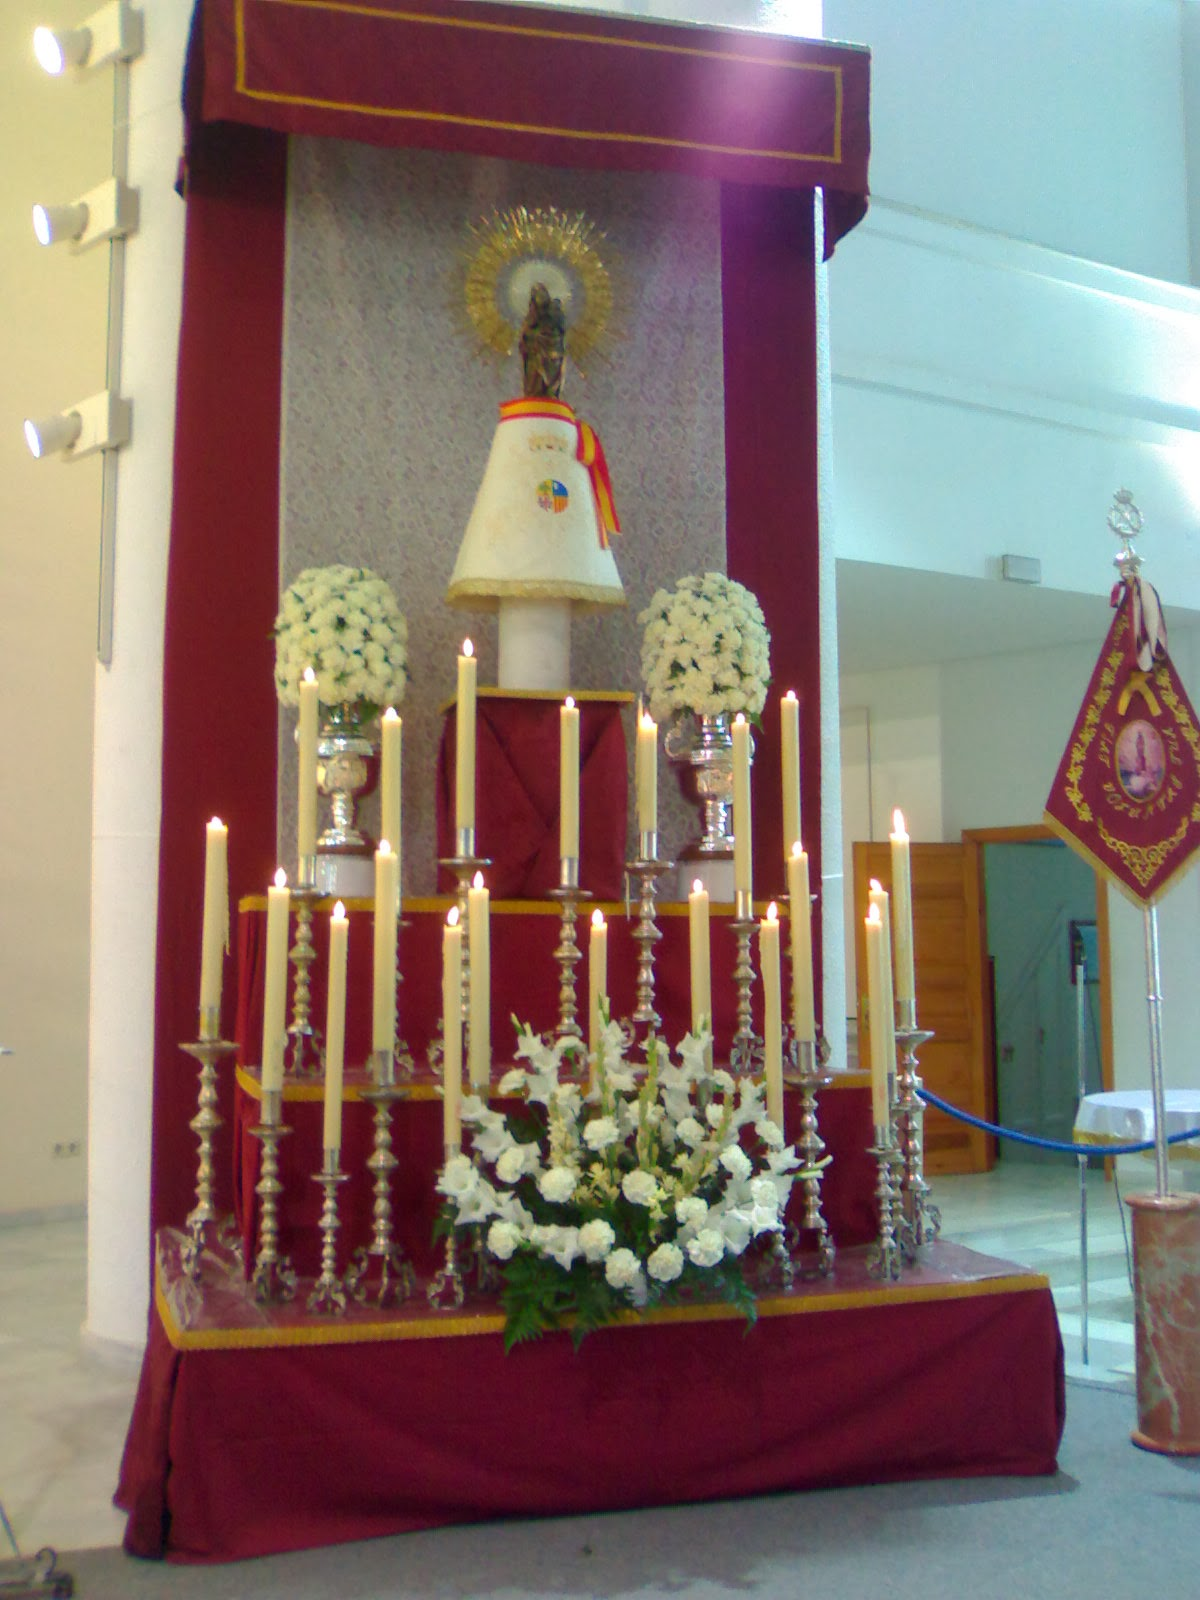 Triduo virgen del Pilar 2010